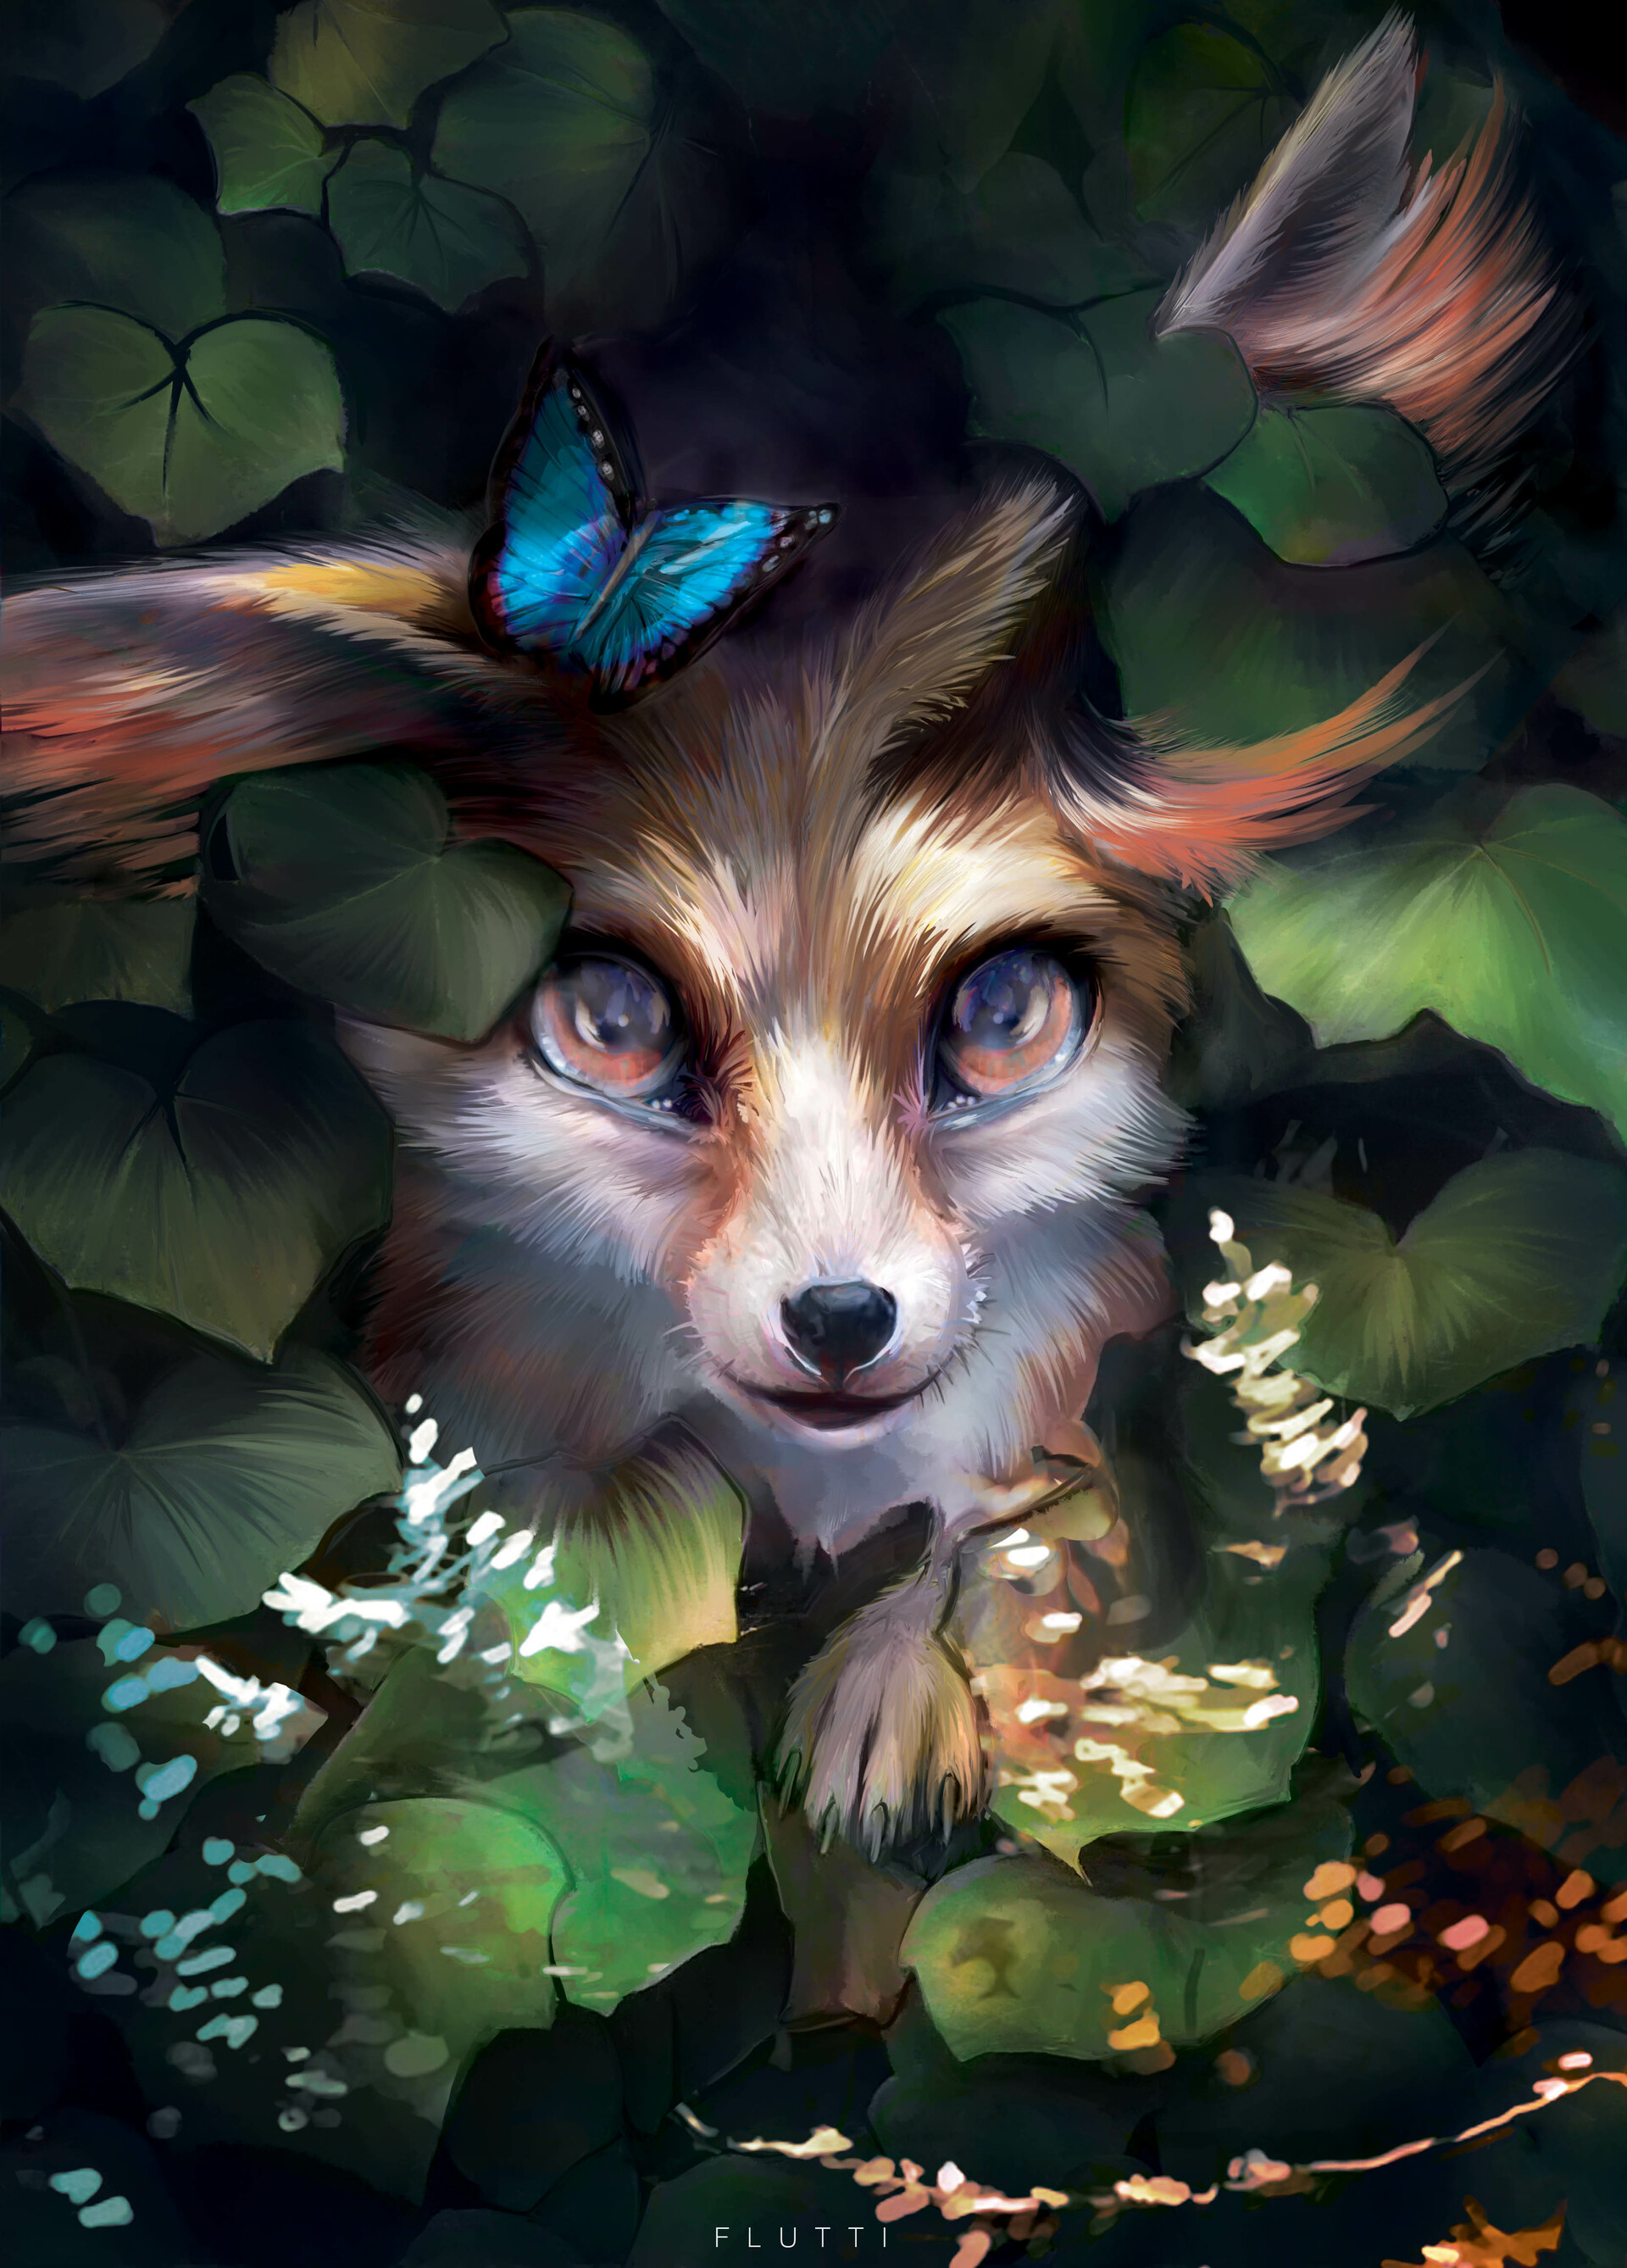 144804 download wallpaper Fox, Art, Leaves, Butterfly, Nice, Sweetheart screensavers and pictures for free